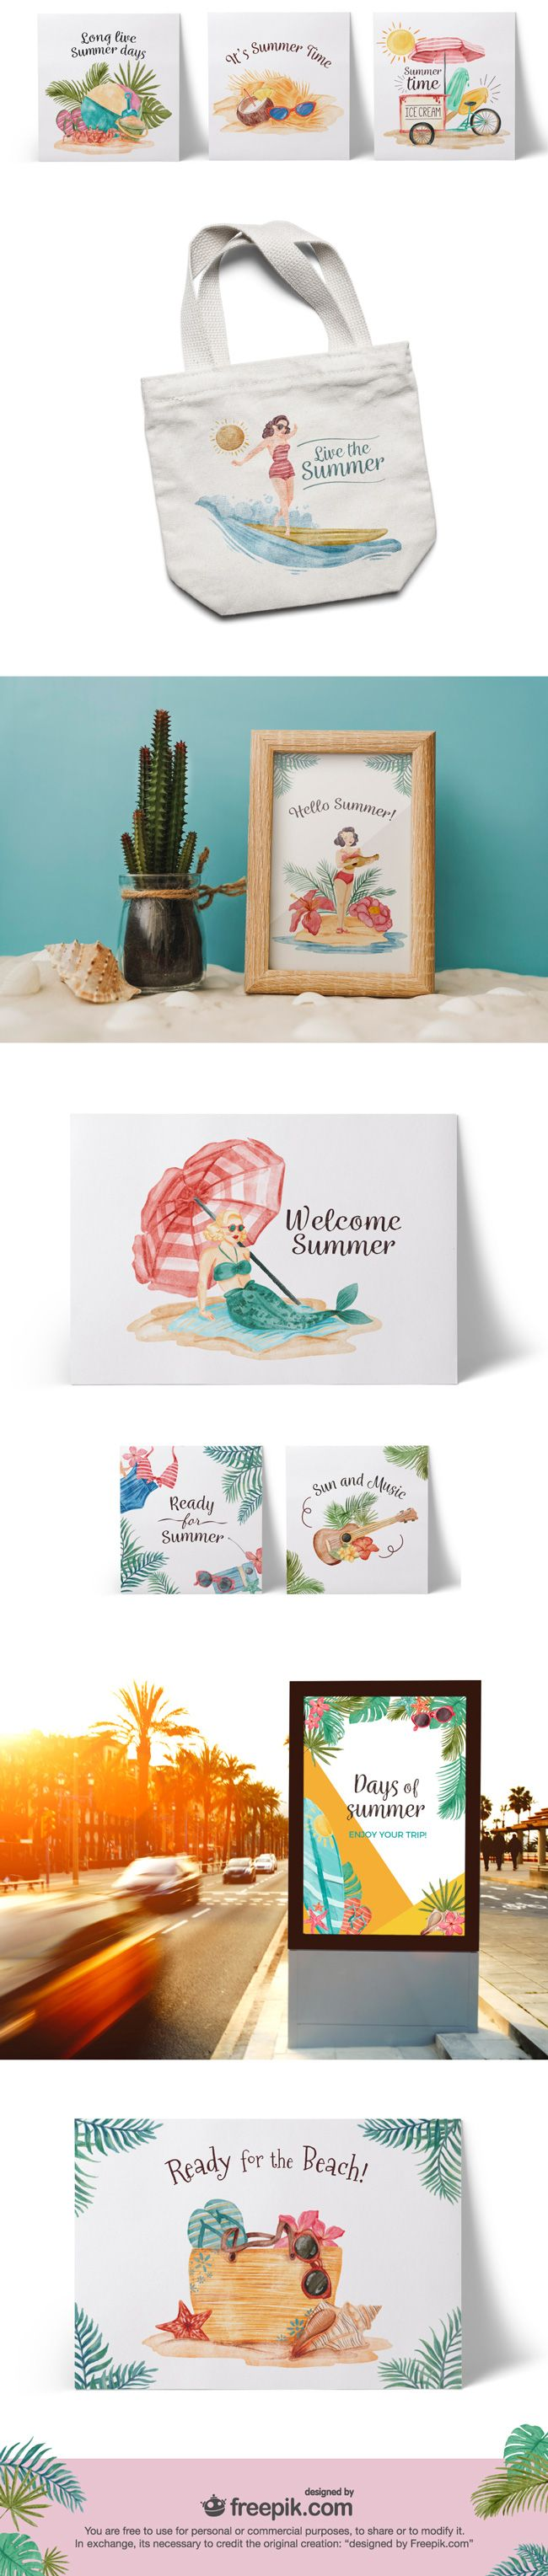 Free Download – Vintage Summer Vector Graphics (Watercolor style)